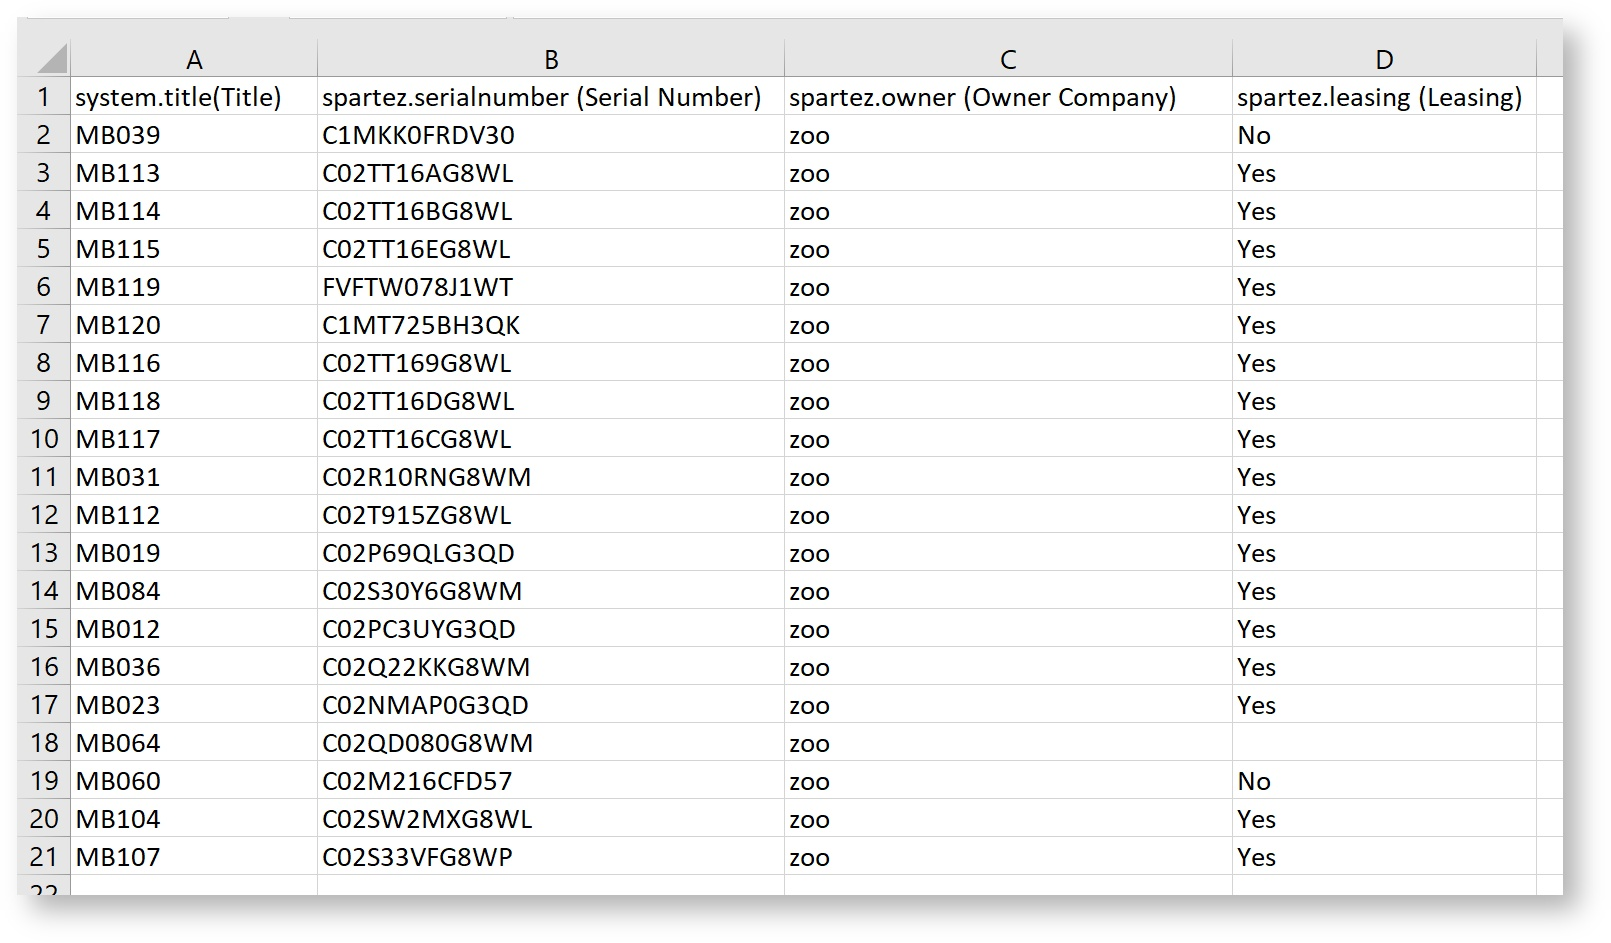 Importing From A Csv File